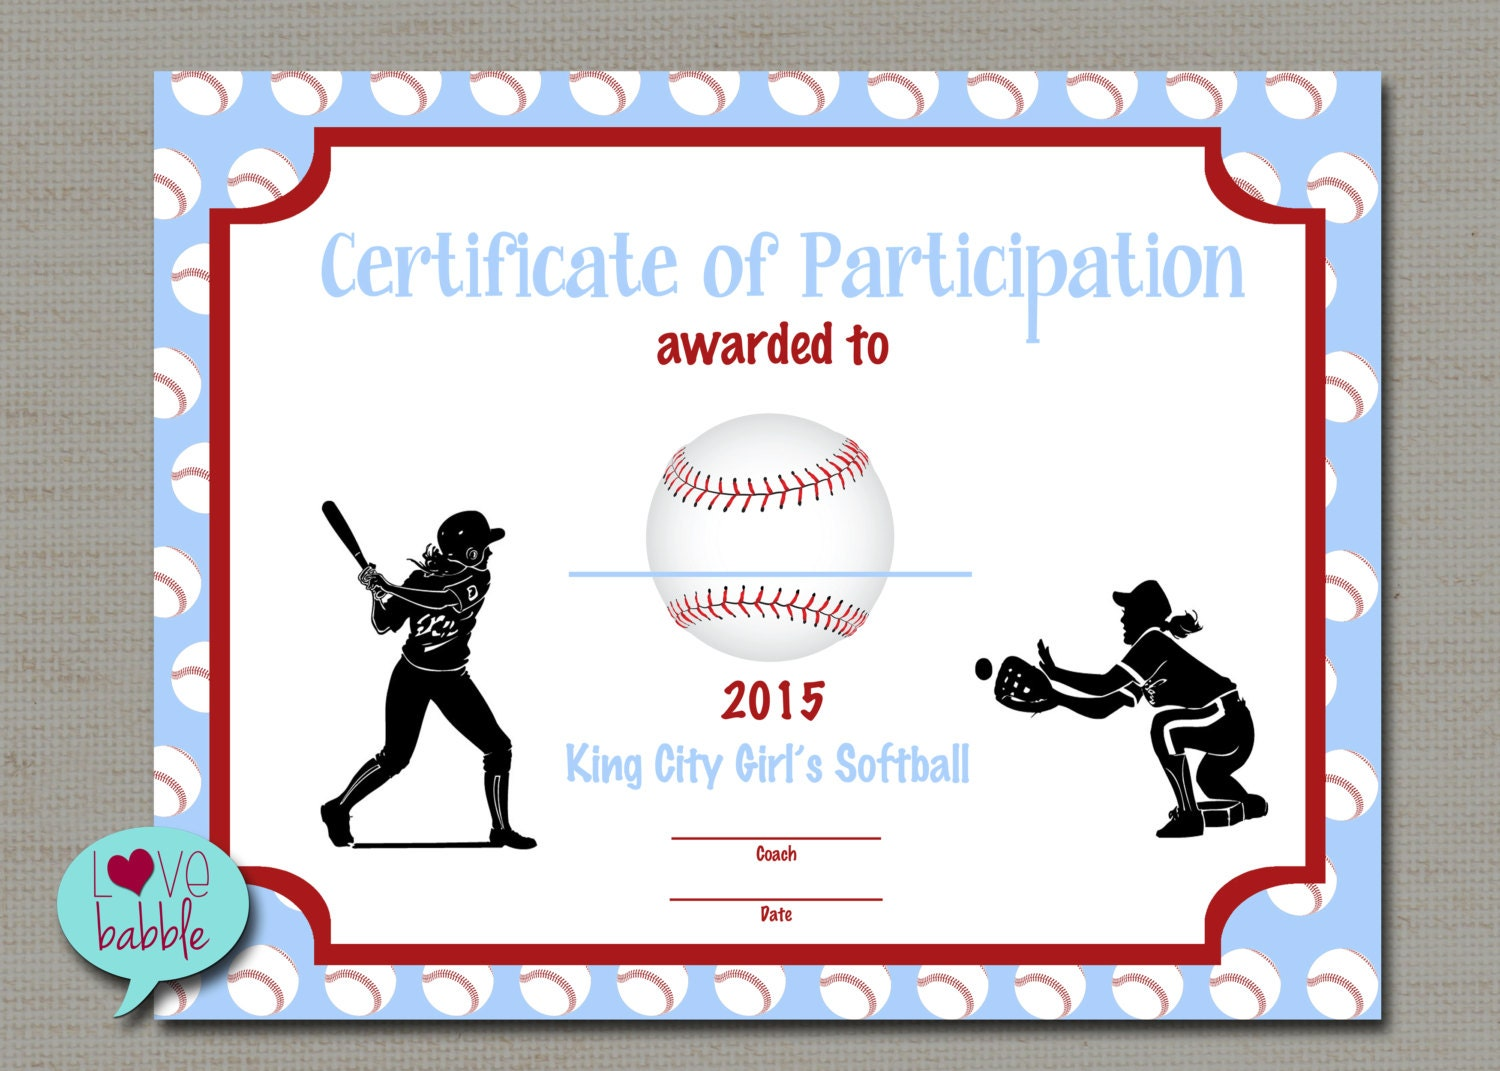 Girls softball baseball t ball award certificate printable zoom pronofoot35fo Choice Image